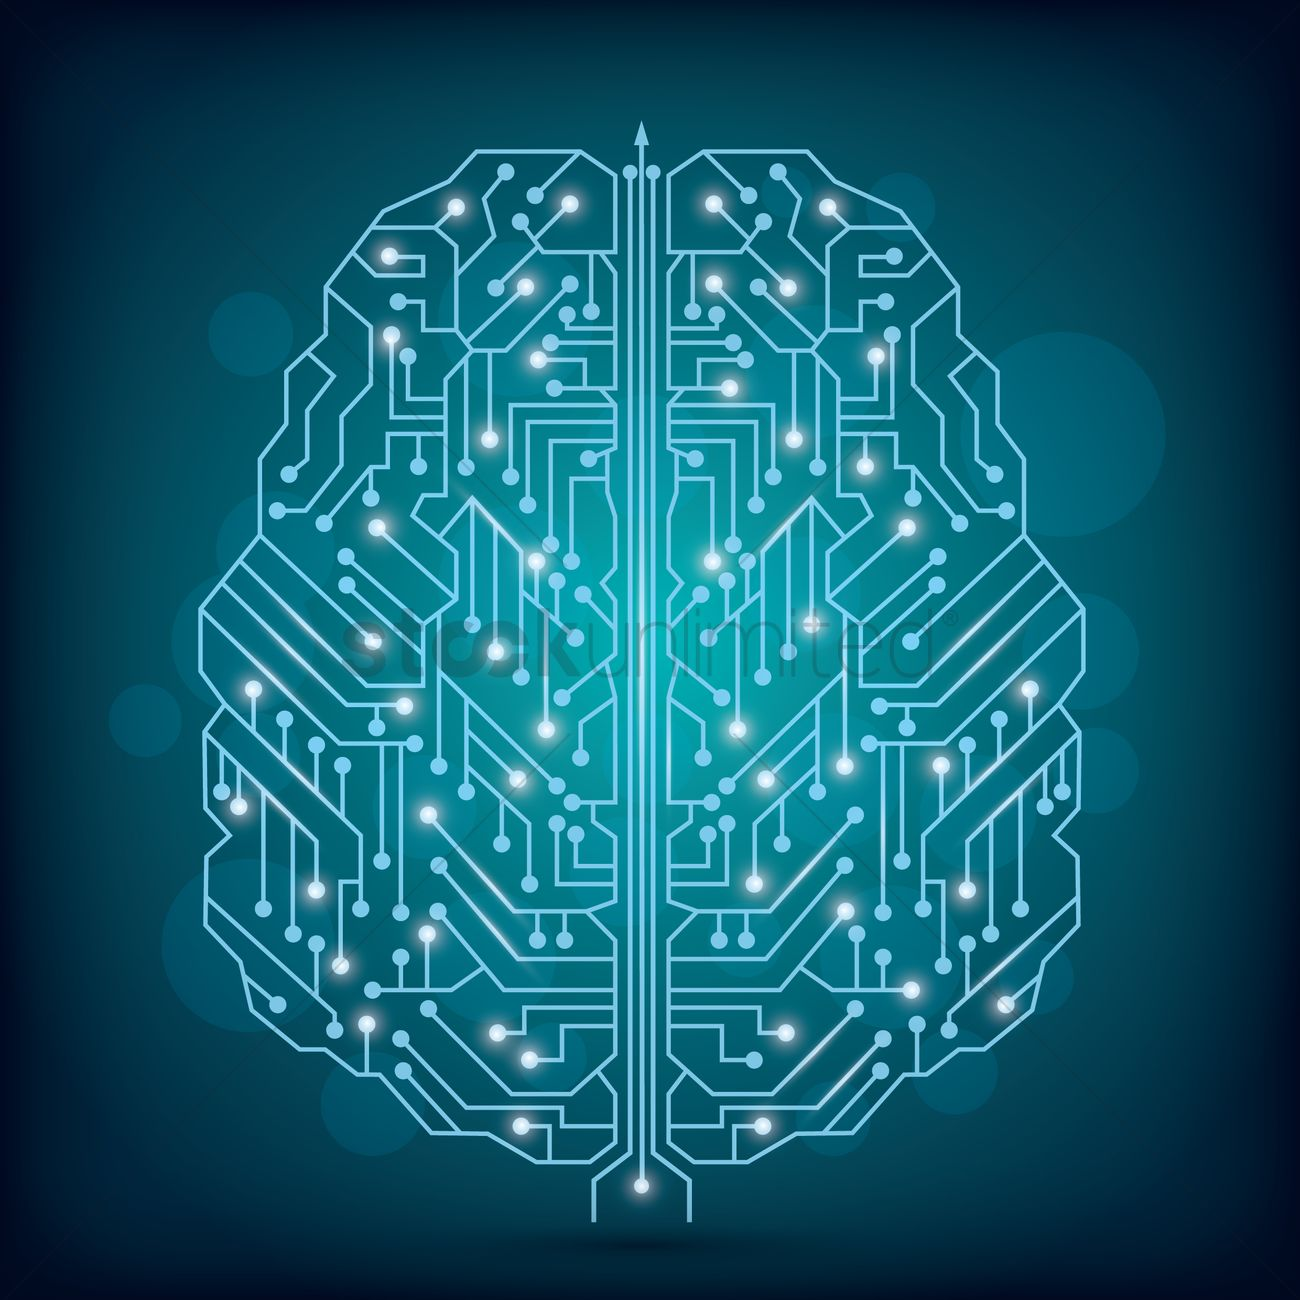 Circuit Brain Reusable : Circuit board brain design vector image